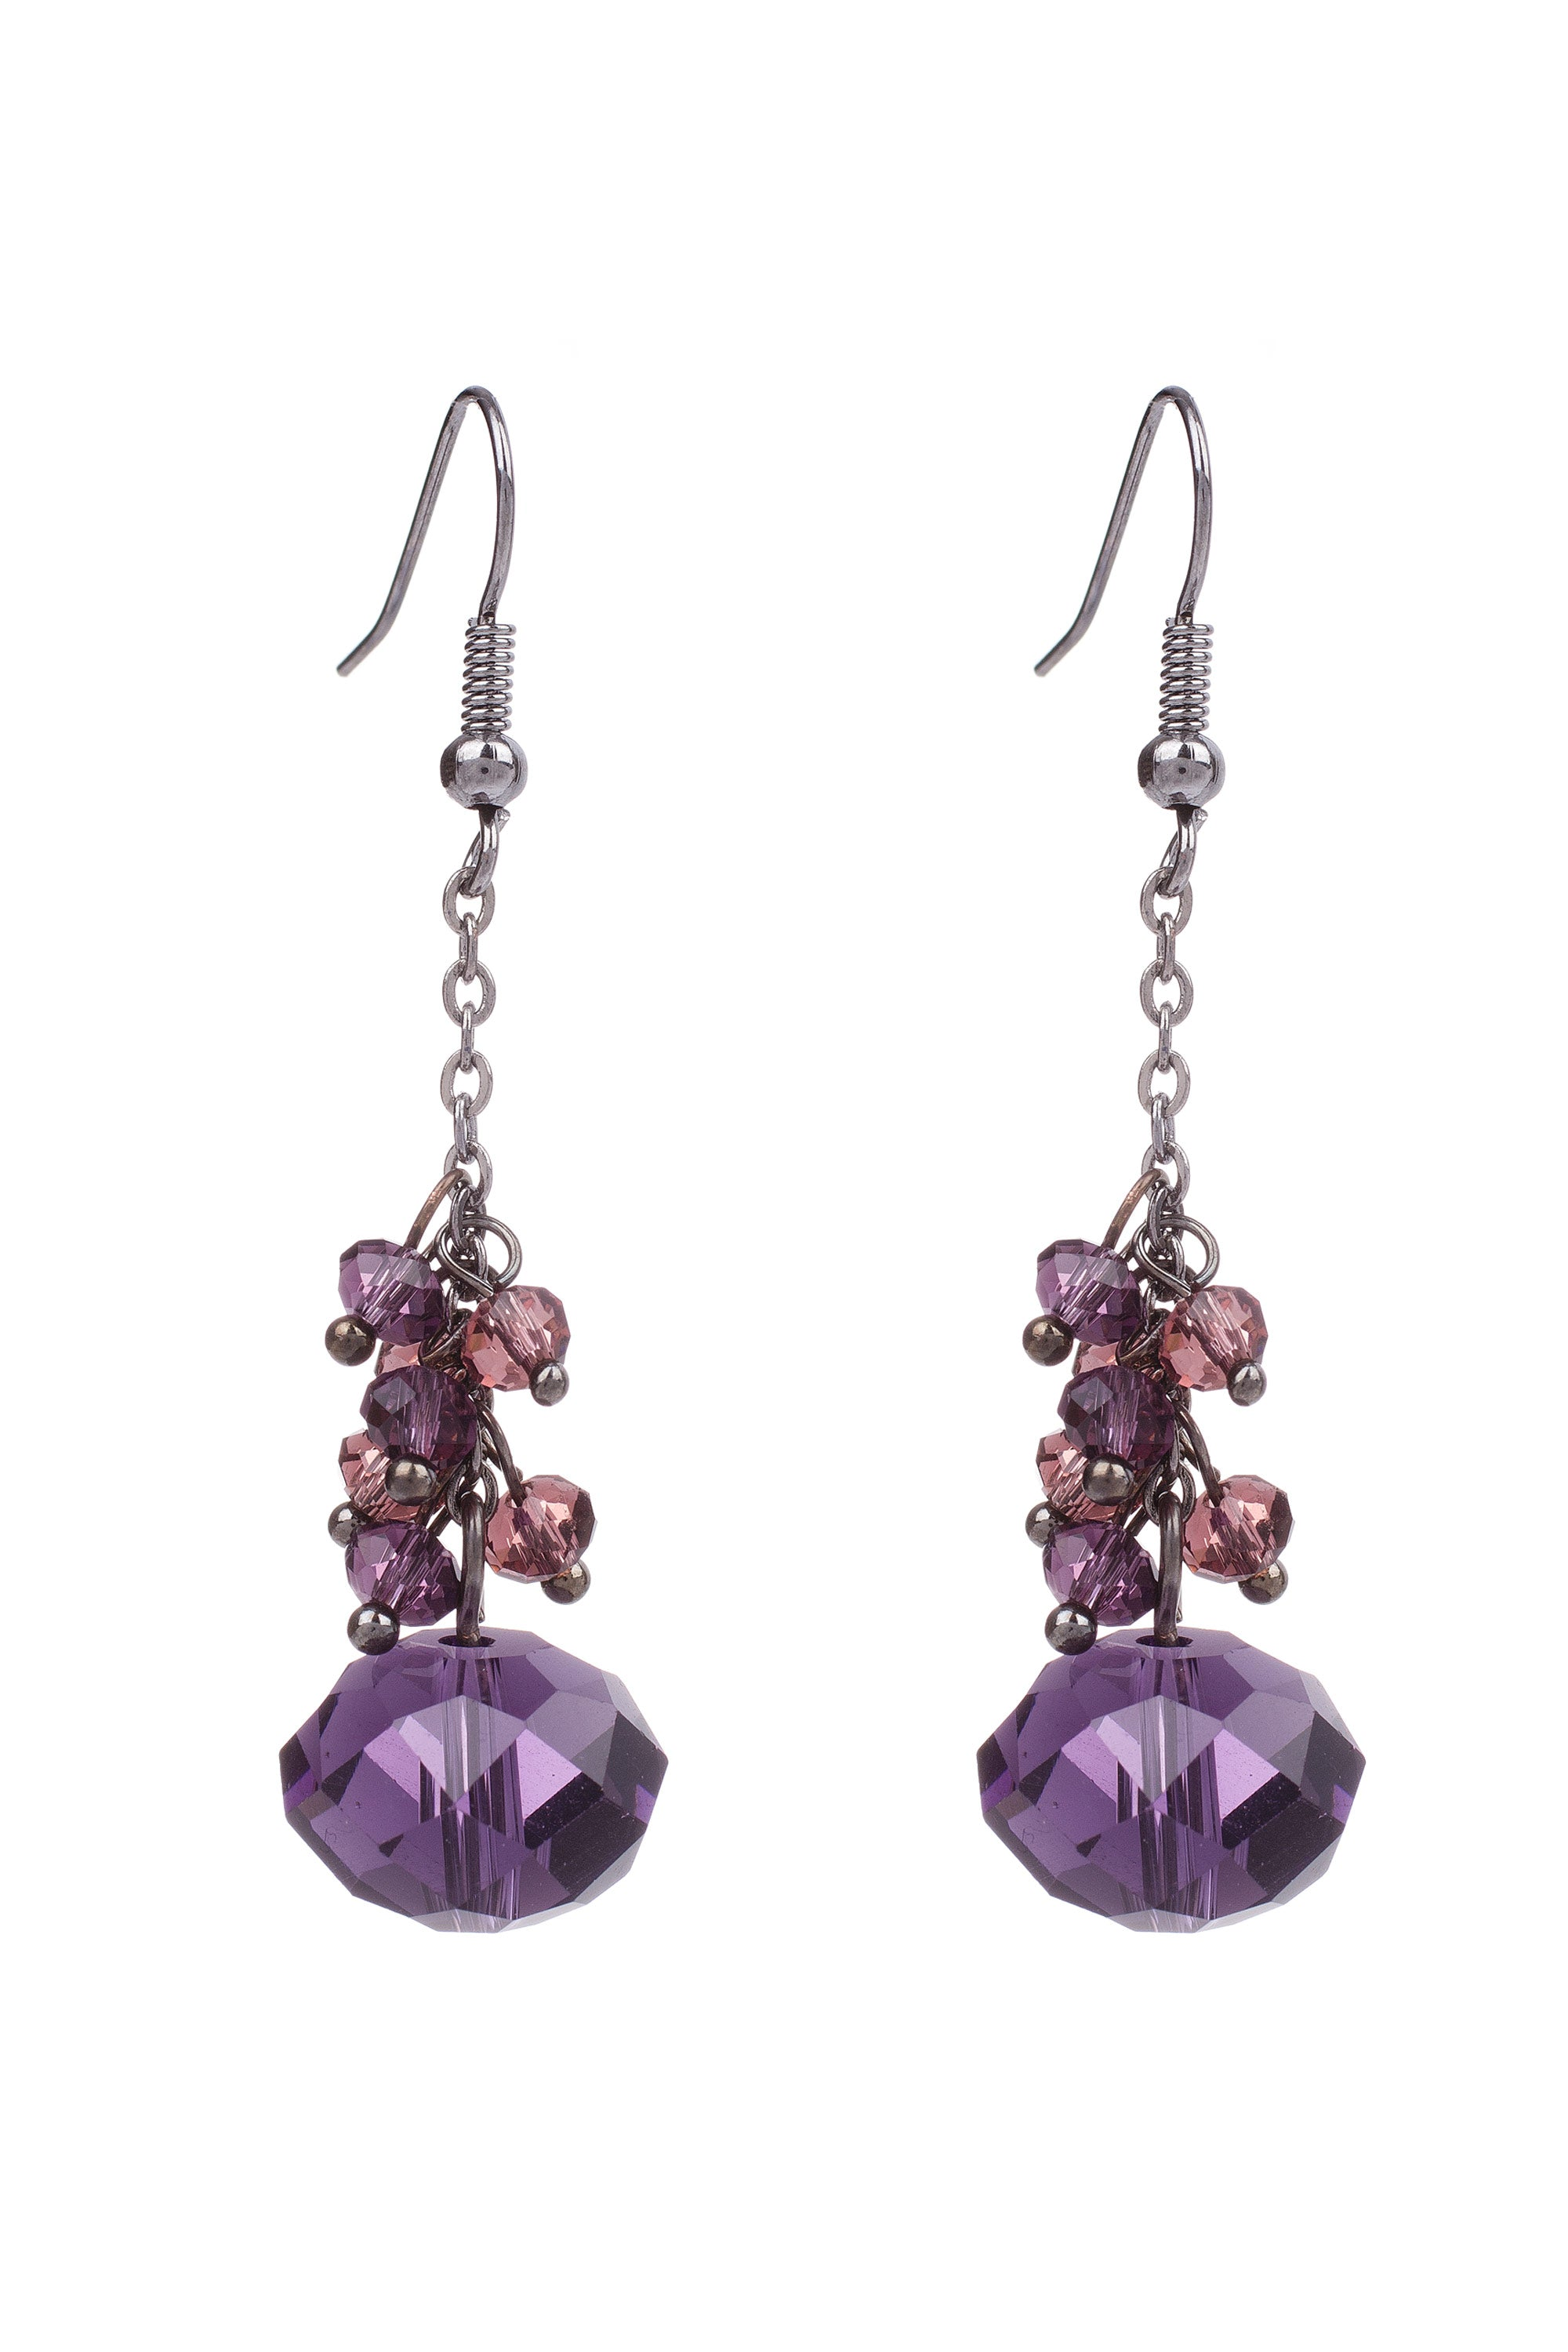 Type 2 Amethyst Earrings